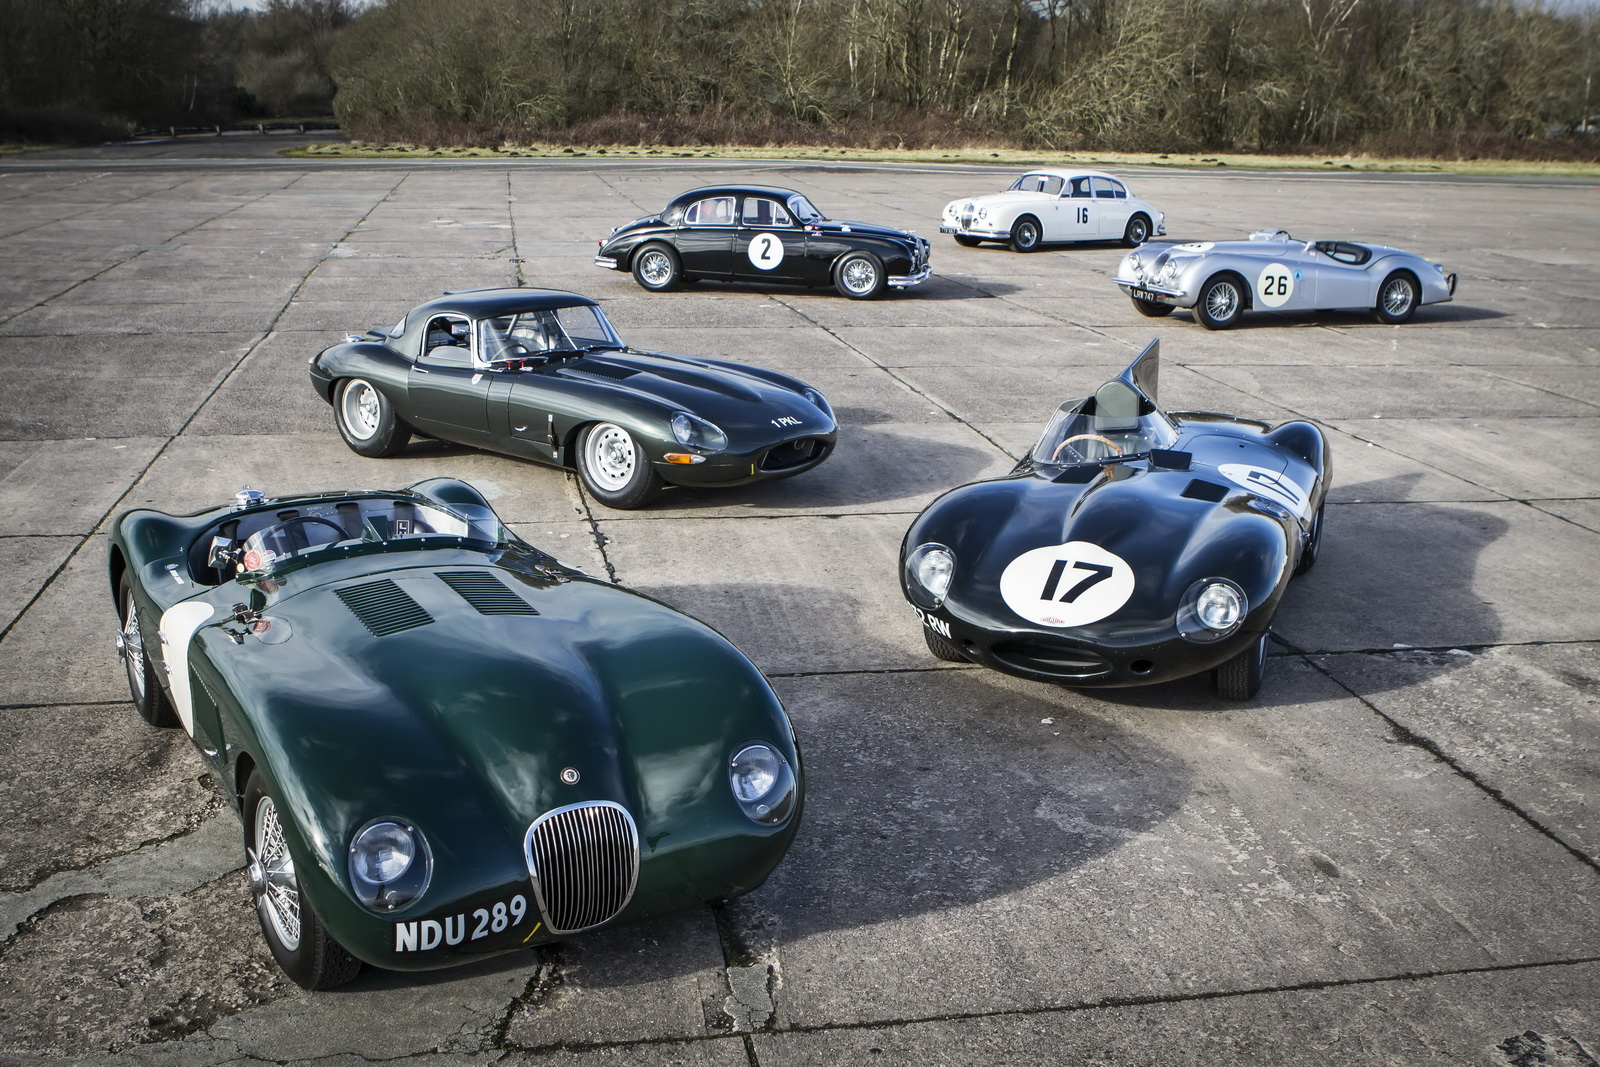 JLR Launches Classic Division To Support Vintage Car Owners | Carscoops